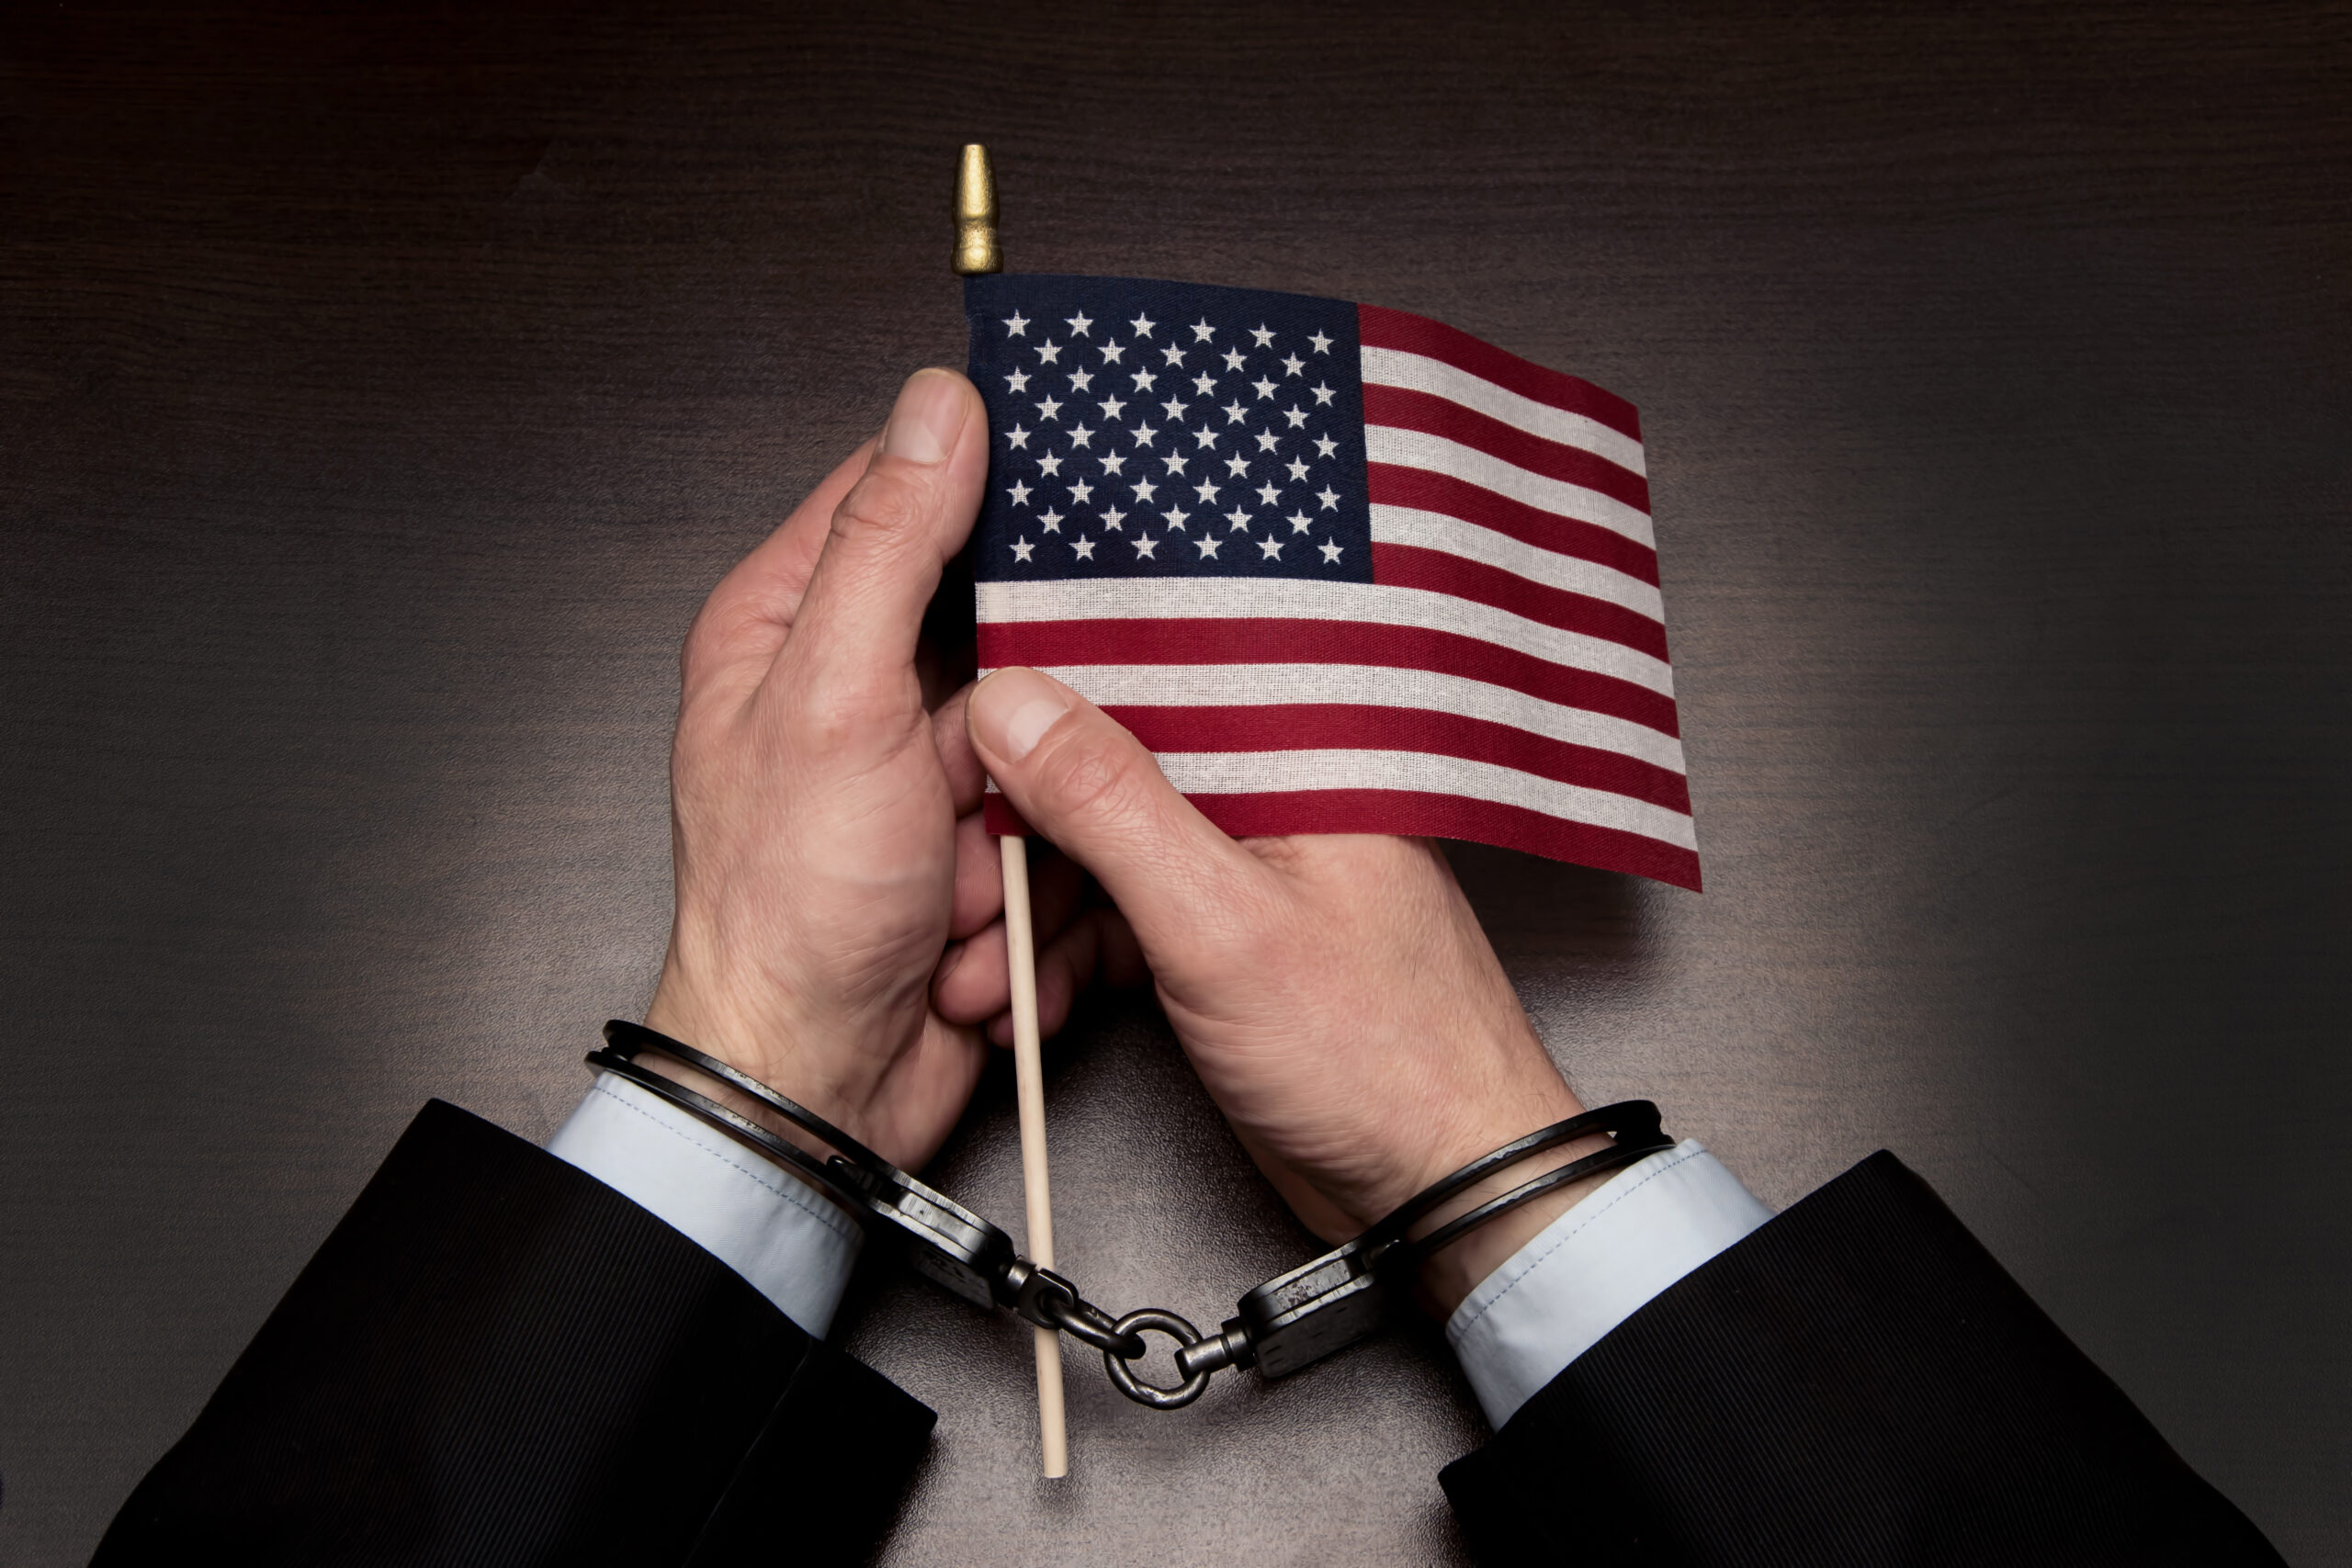 Men's hands in handcuffs hold the American flag in their hands. Concept: American prisoner, imaginary freedom, deportation from the country, persona non grata